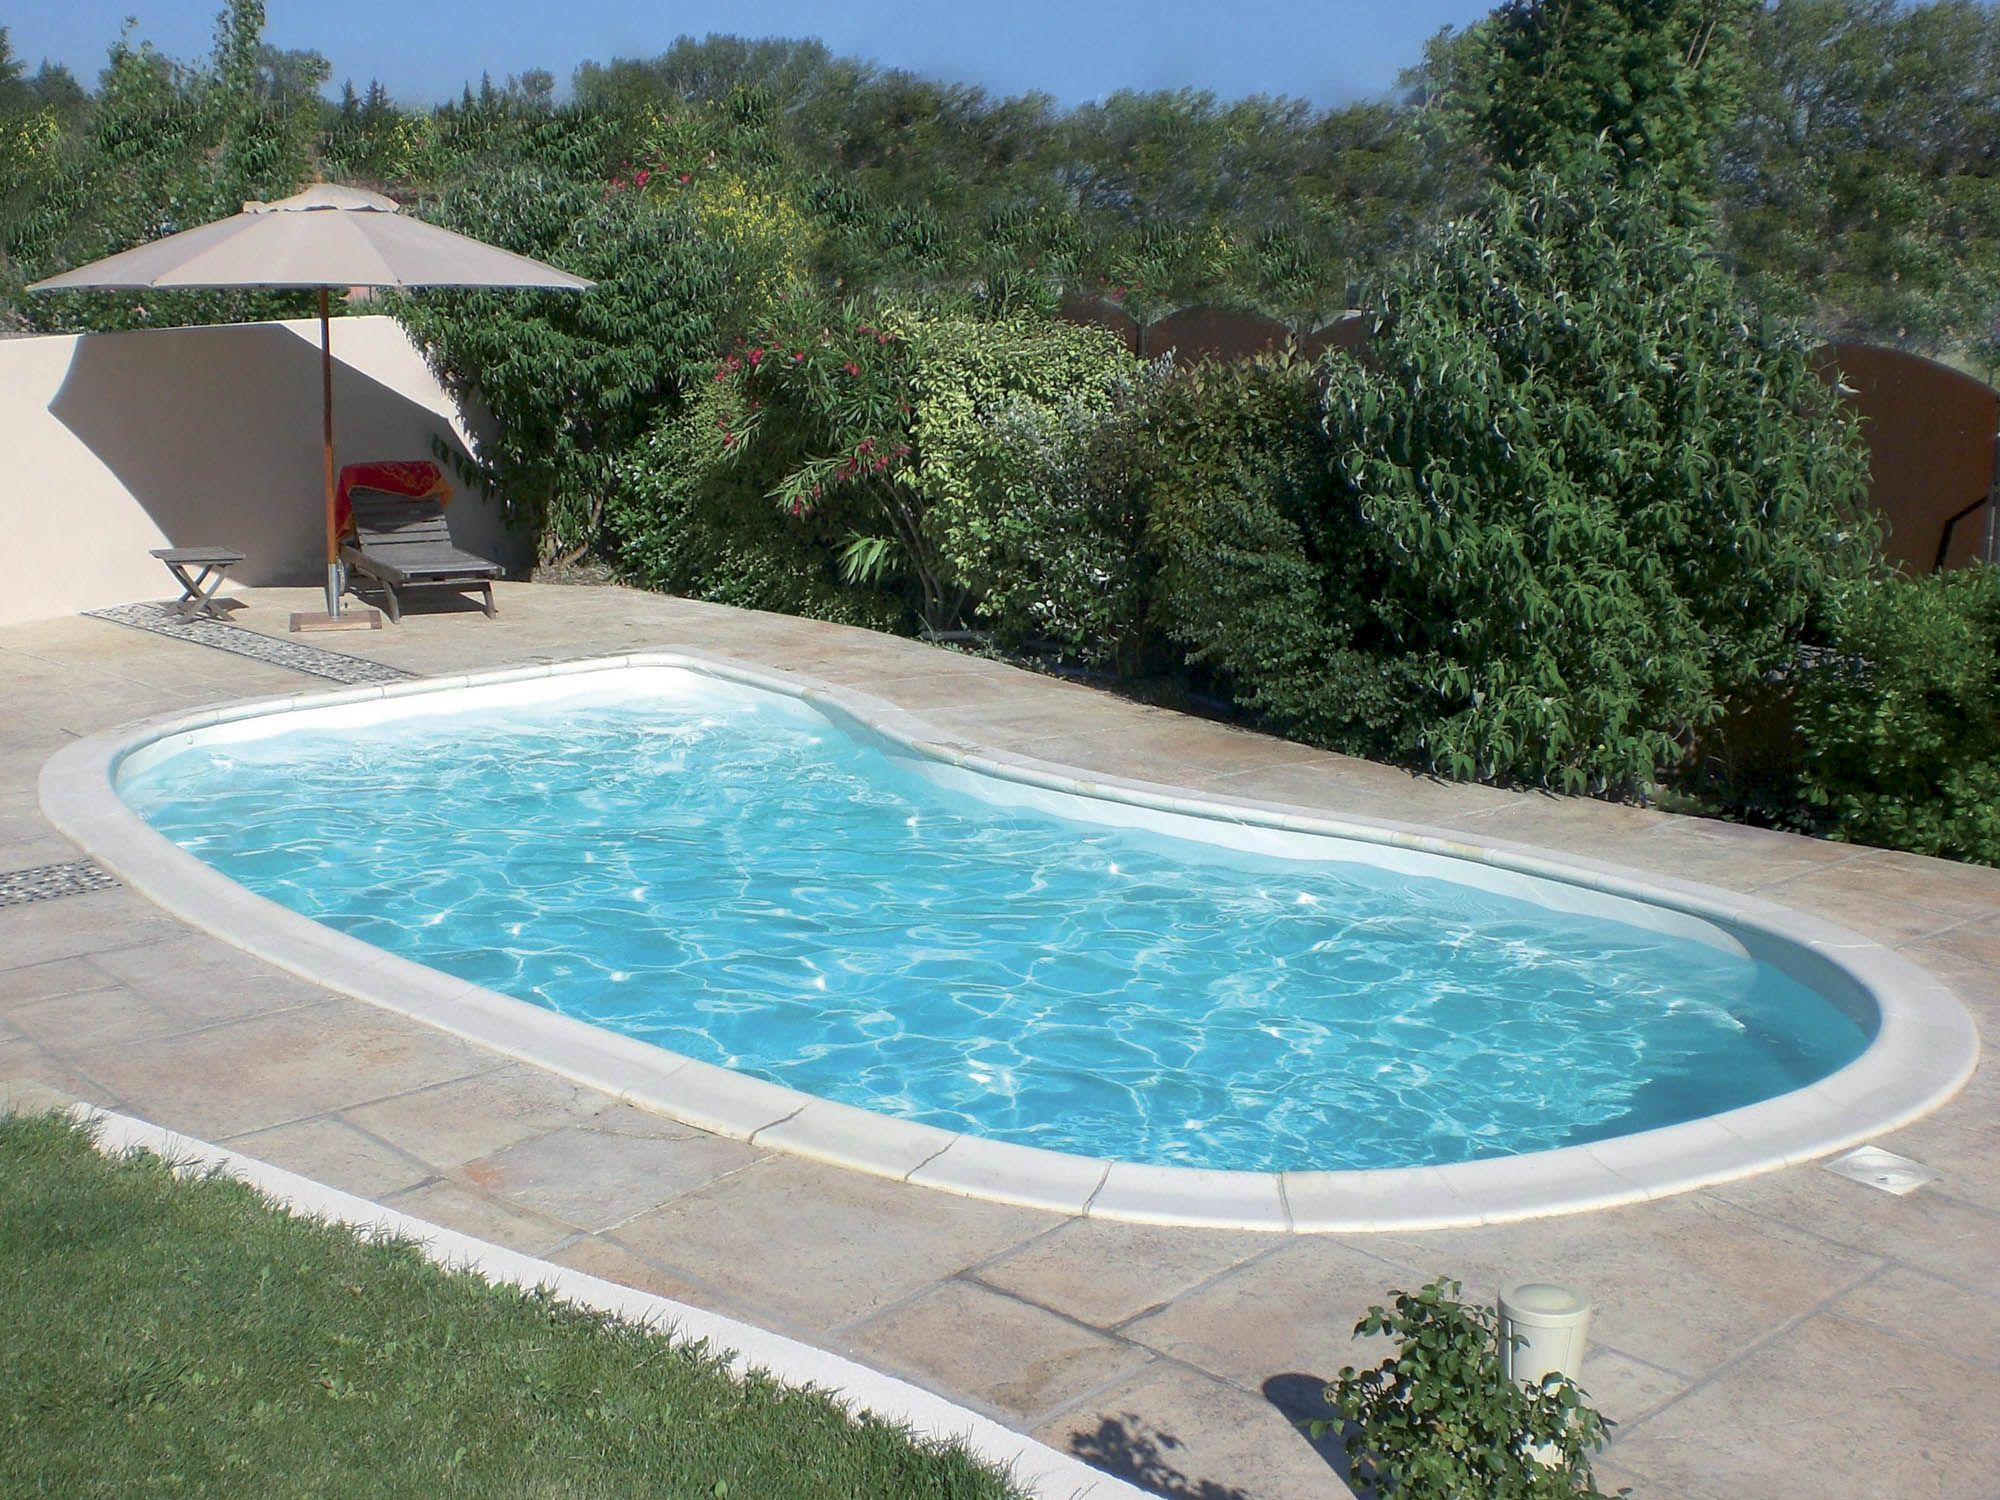 Piscine coque polyester ovation piscine haricot for Piscine resine coque